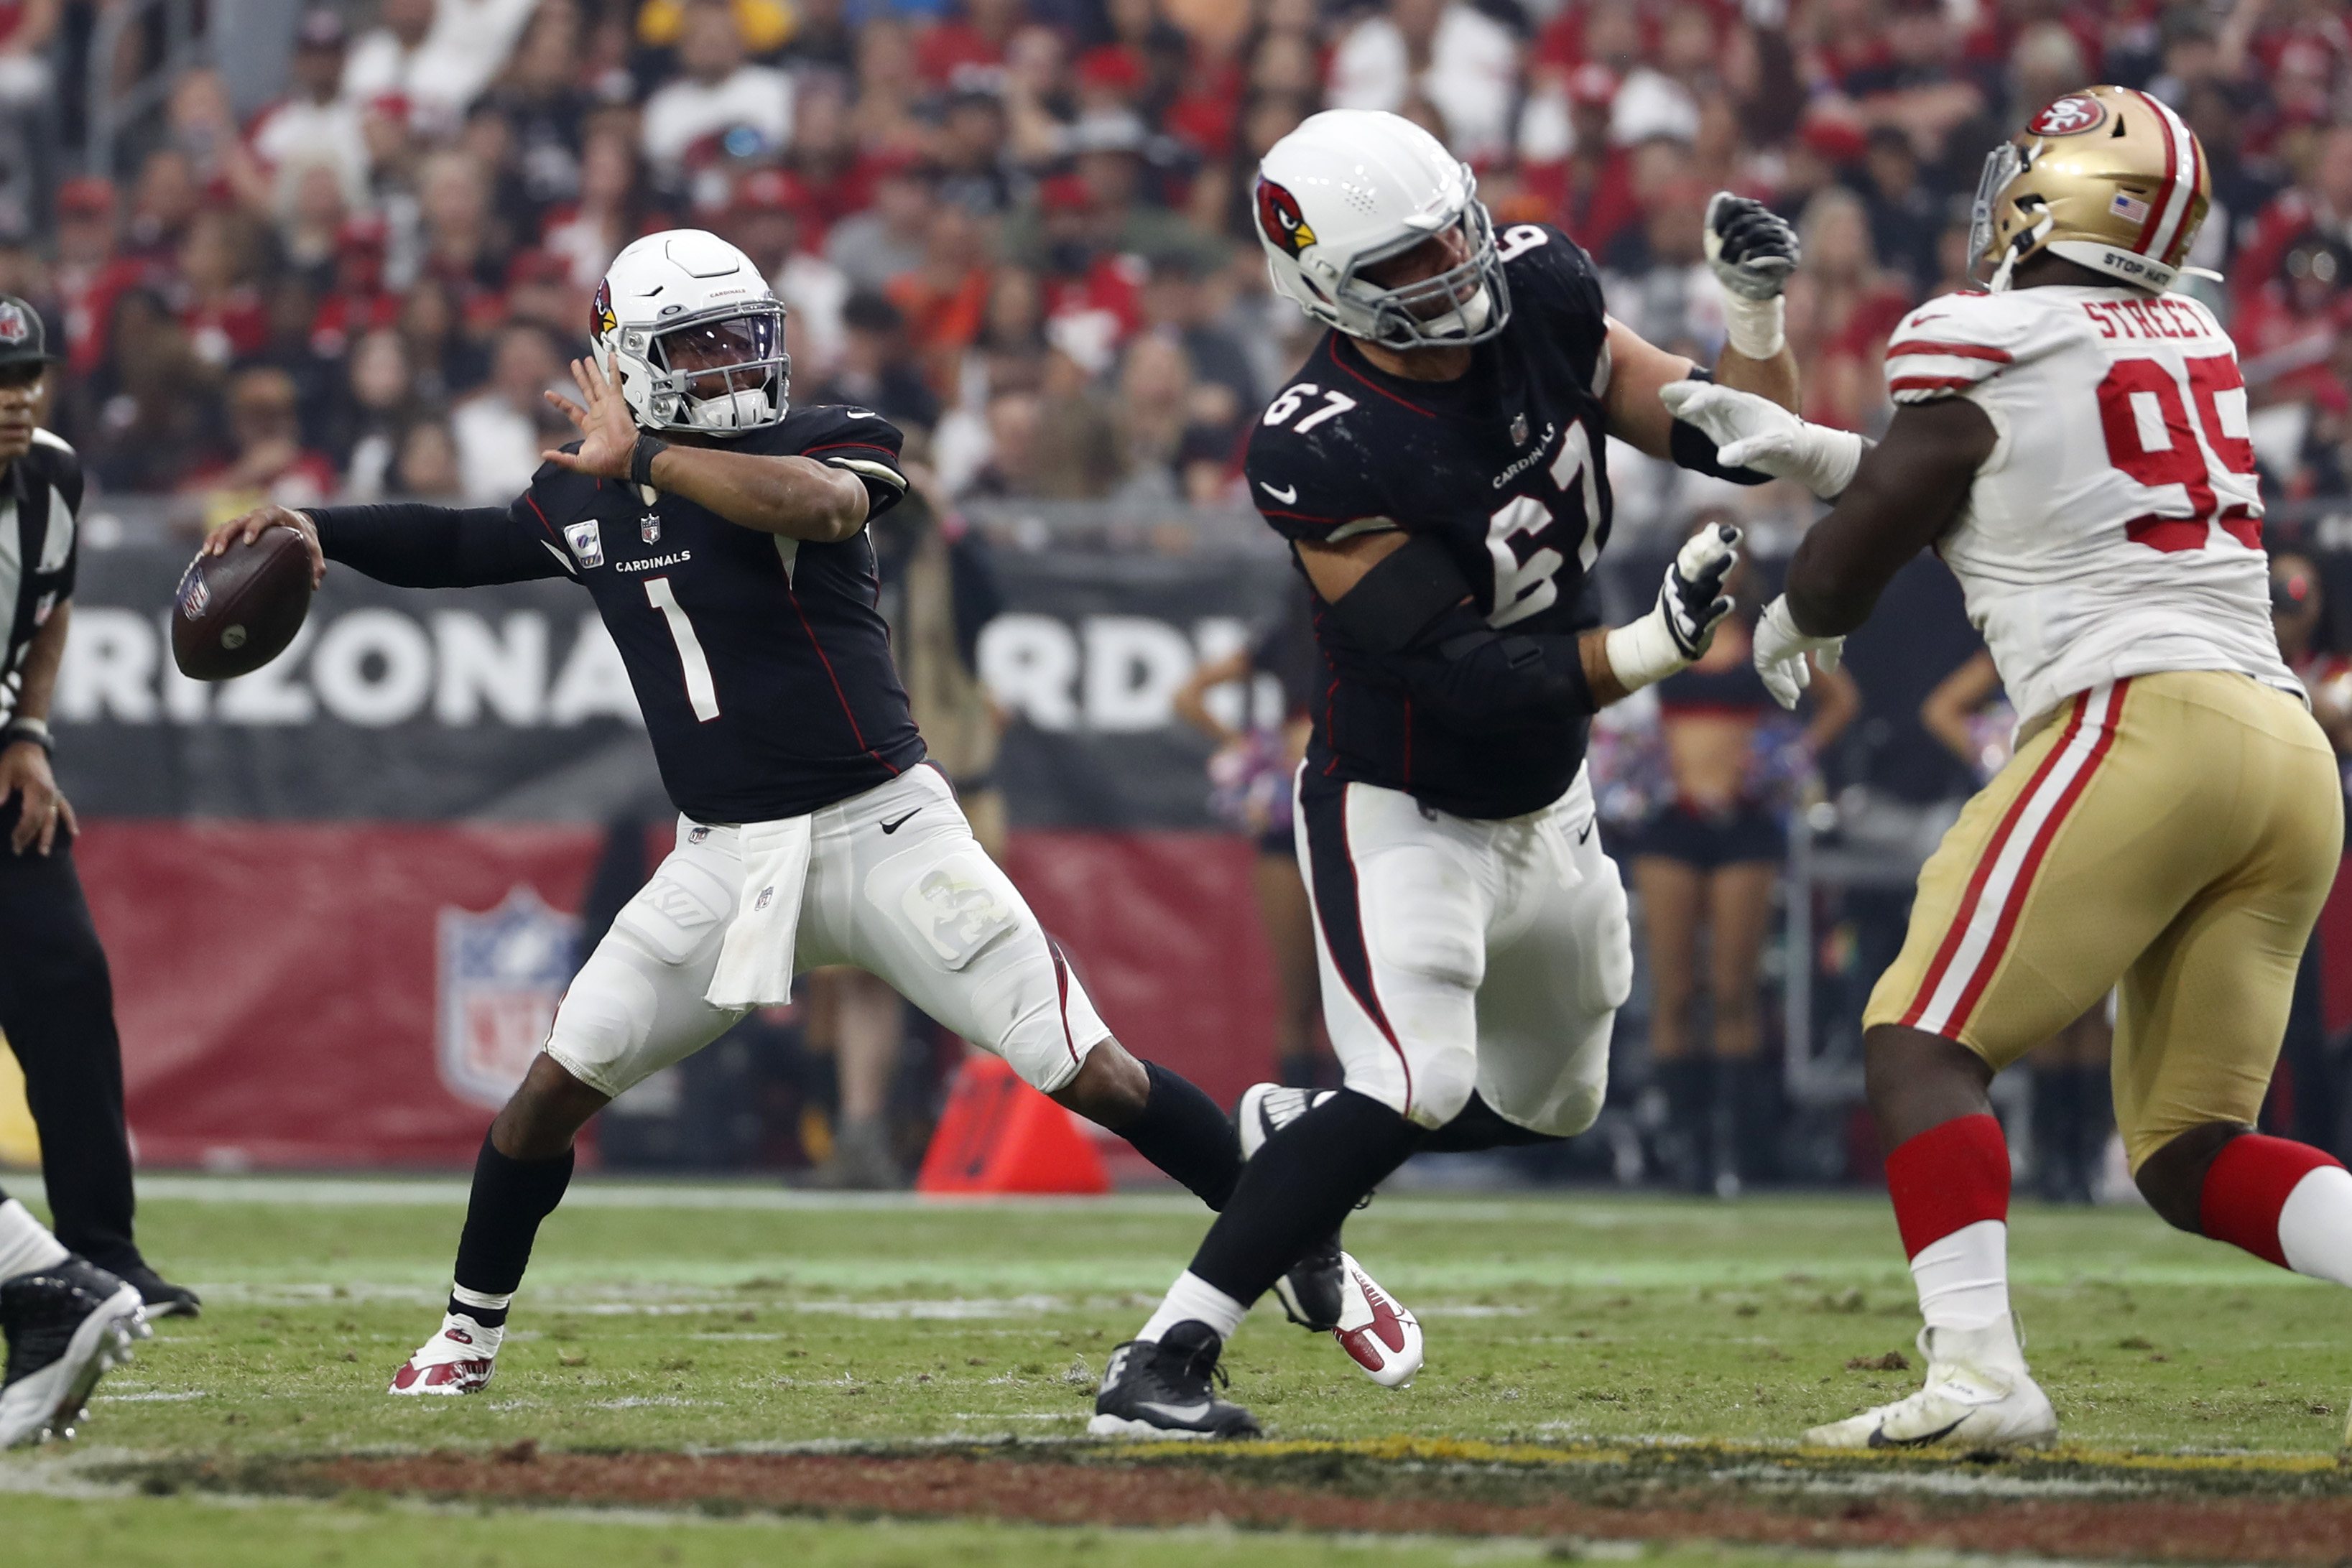 Arizona Cardinals quarterback Kyler Murray (1) throws a pass during the second half against the San Francisco 49ers at State Farm Stadium.